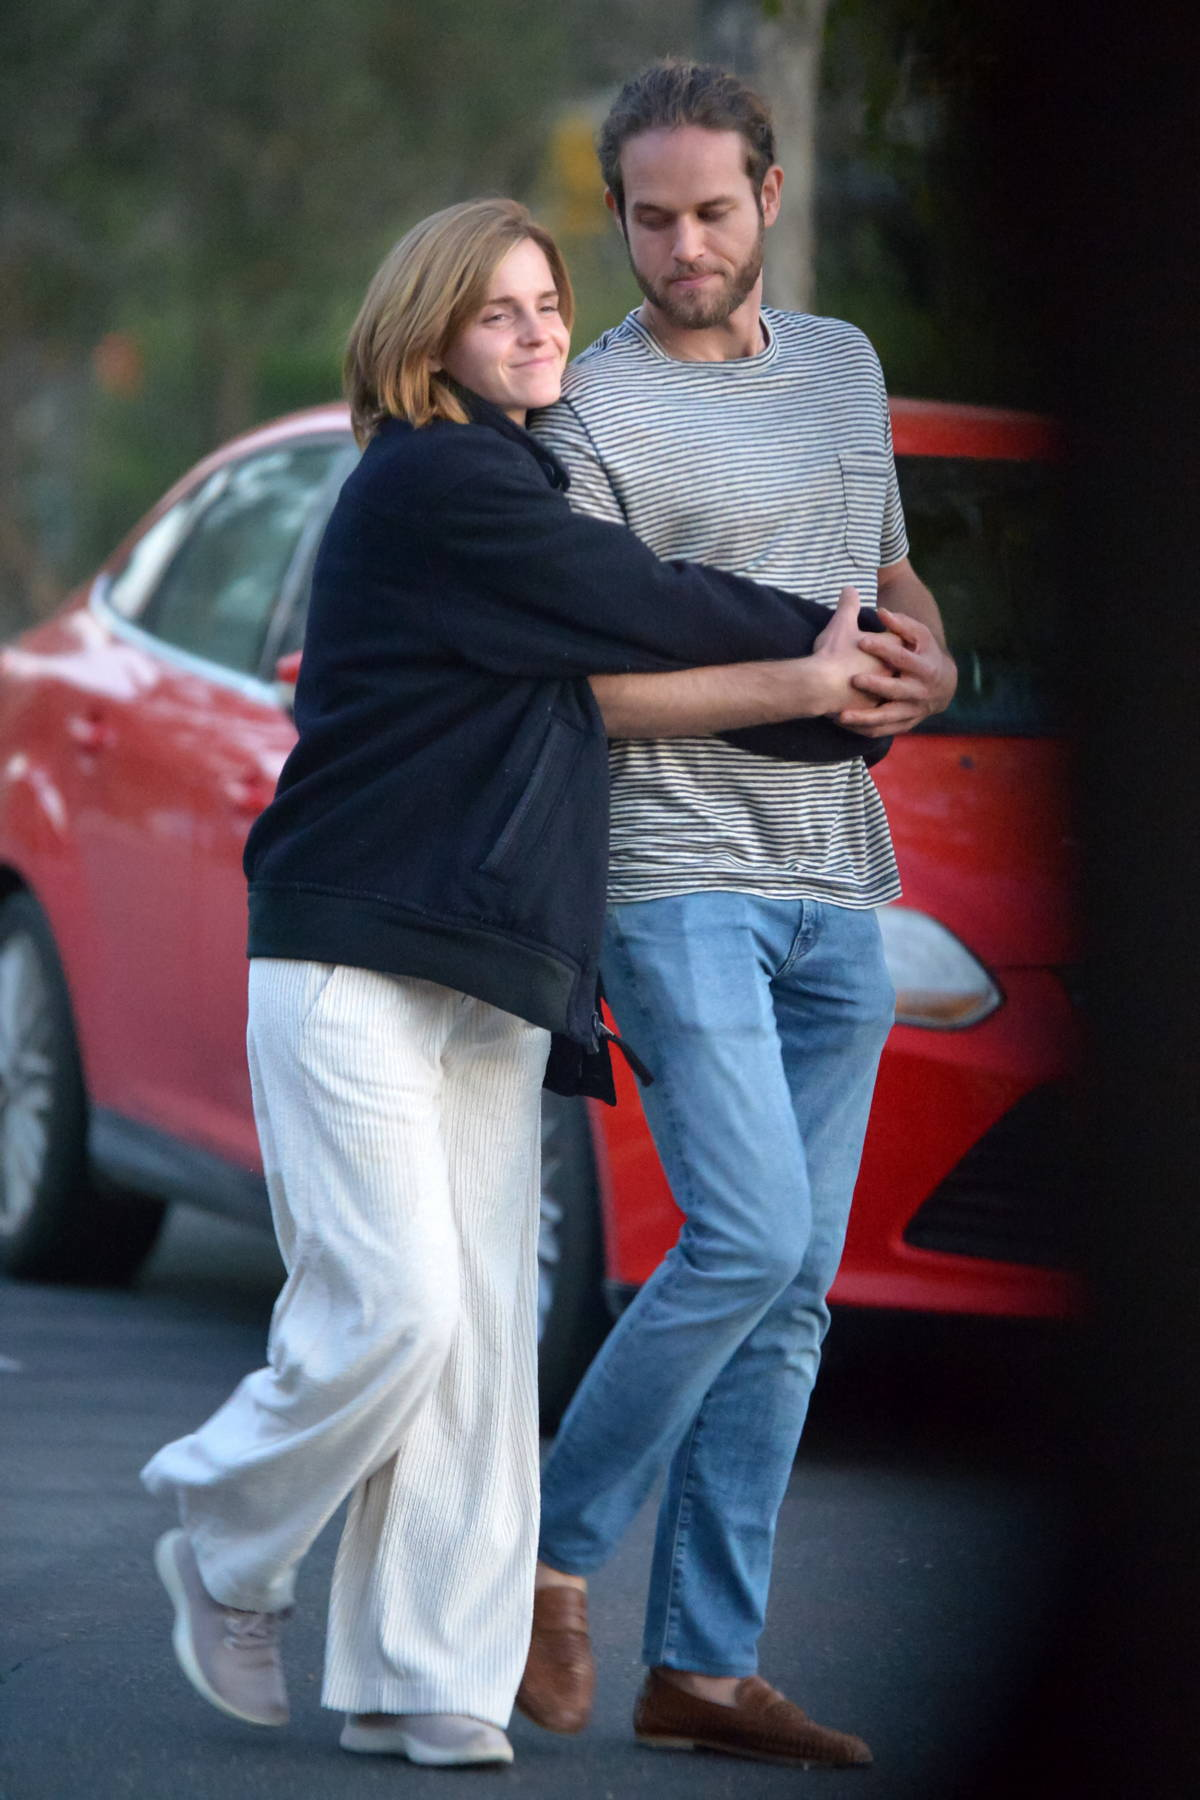 Emma Watson and beau Leo Robinton pack on the PDA during a romantic stroll in Los Angeles